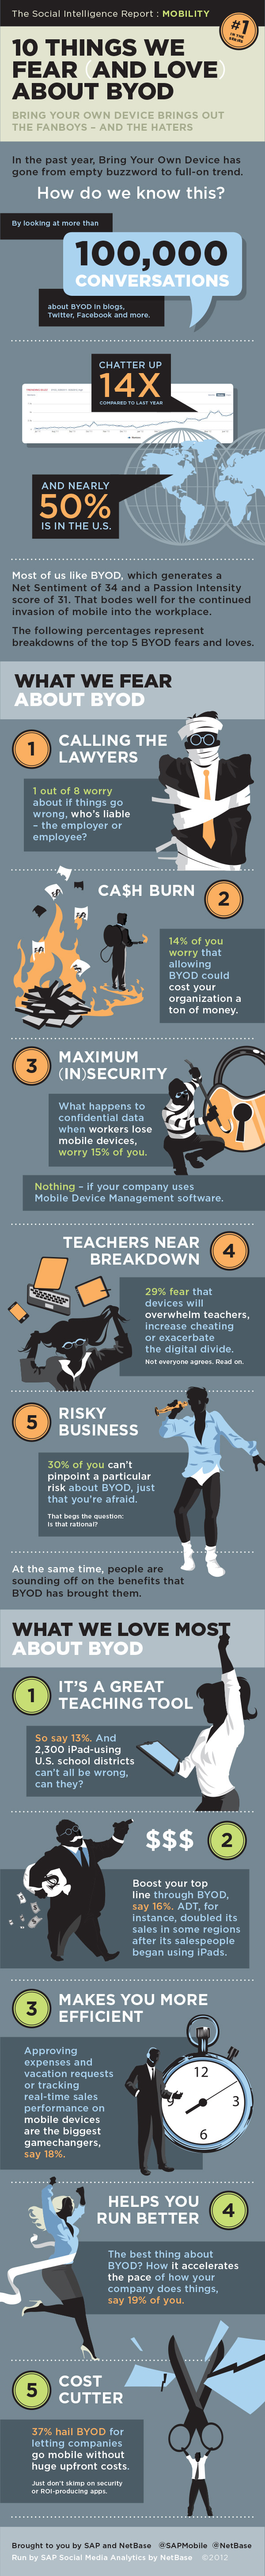 SAP NetBase BYOD Top Fears Loves Infographic R3